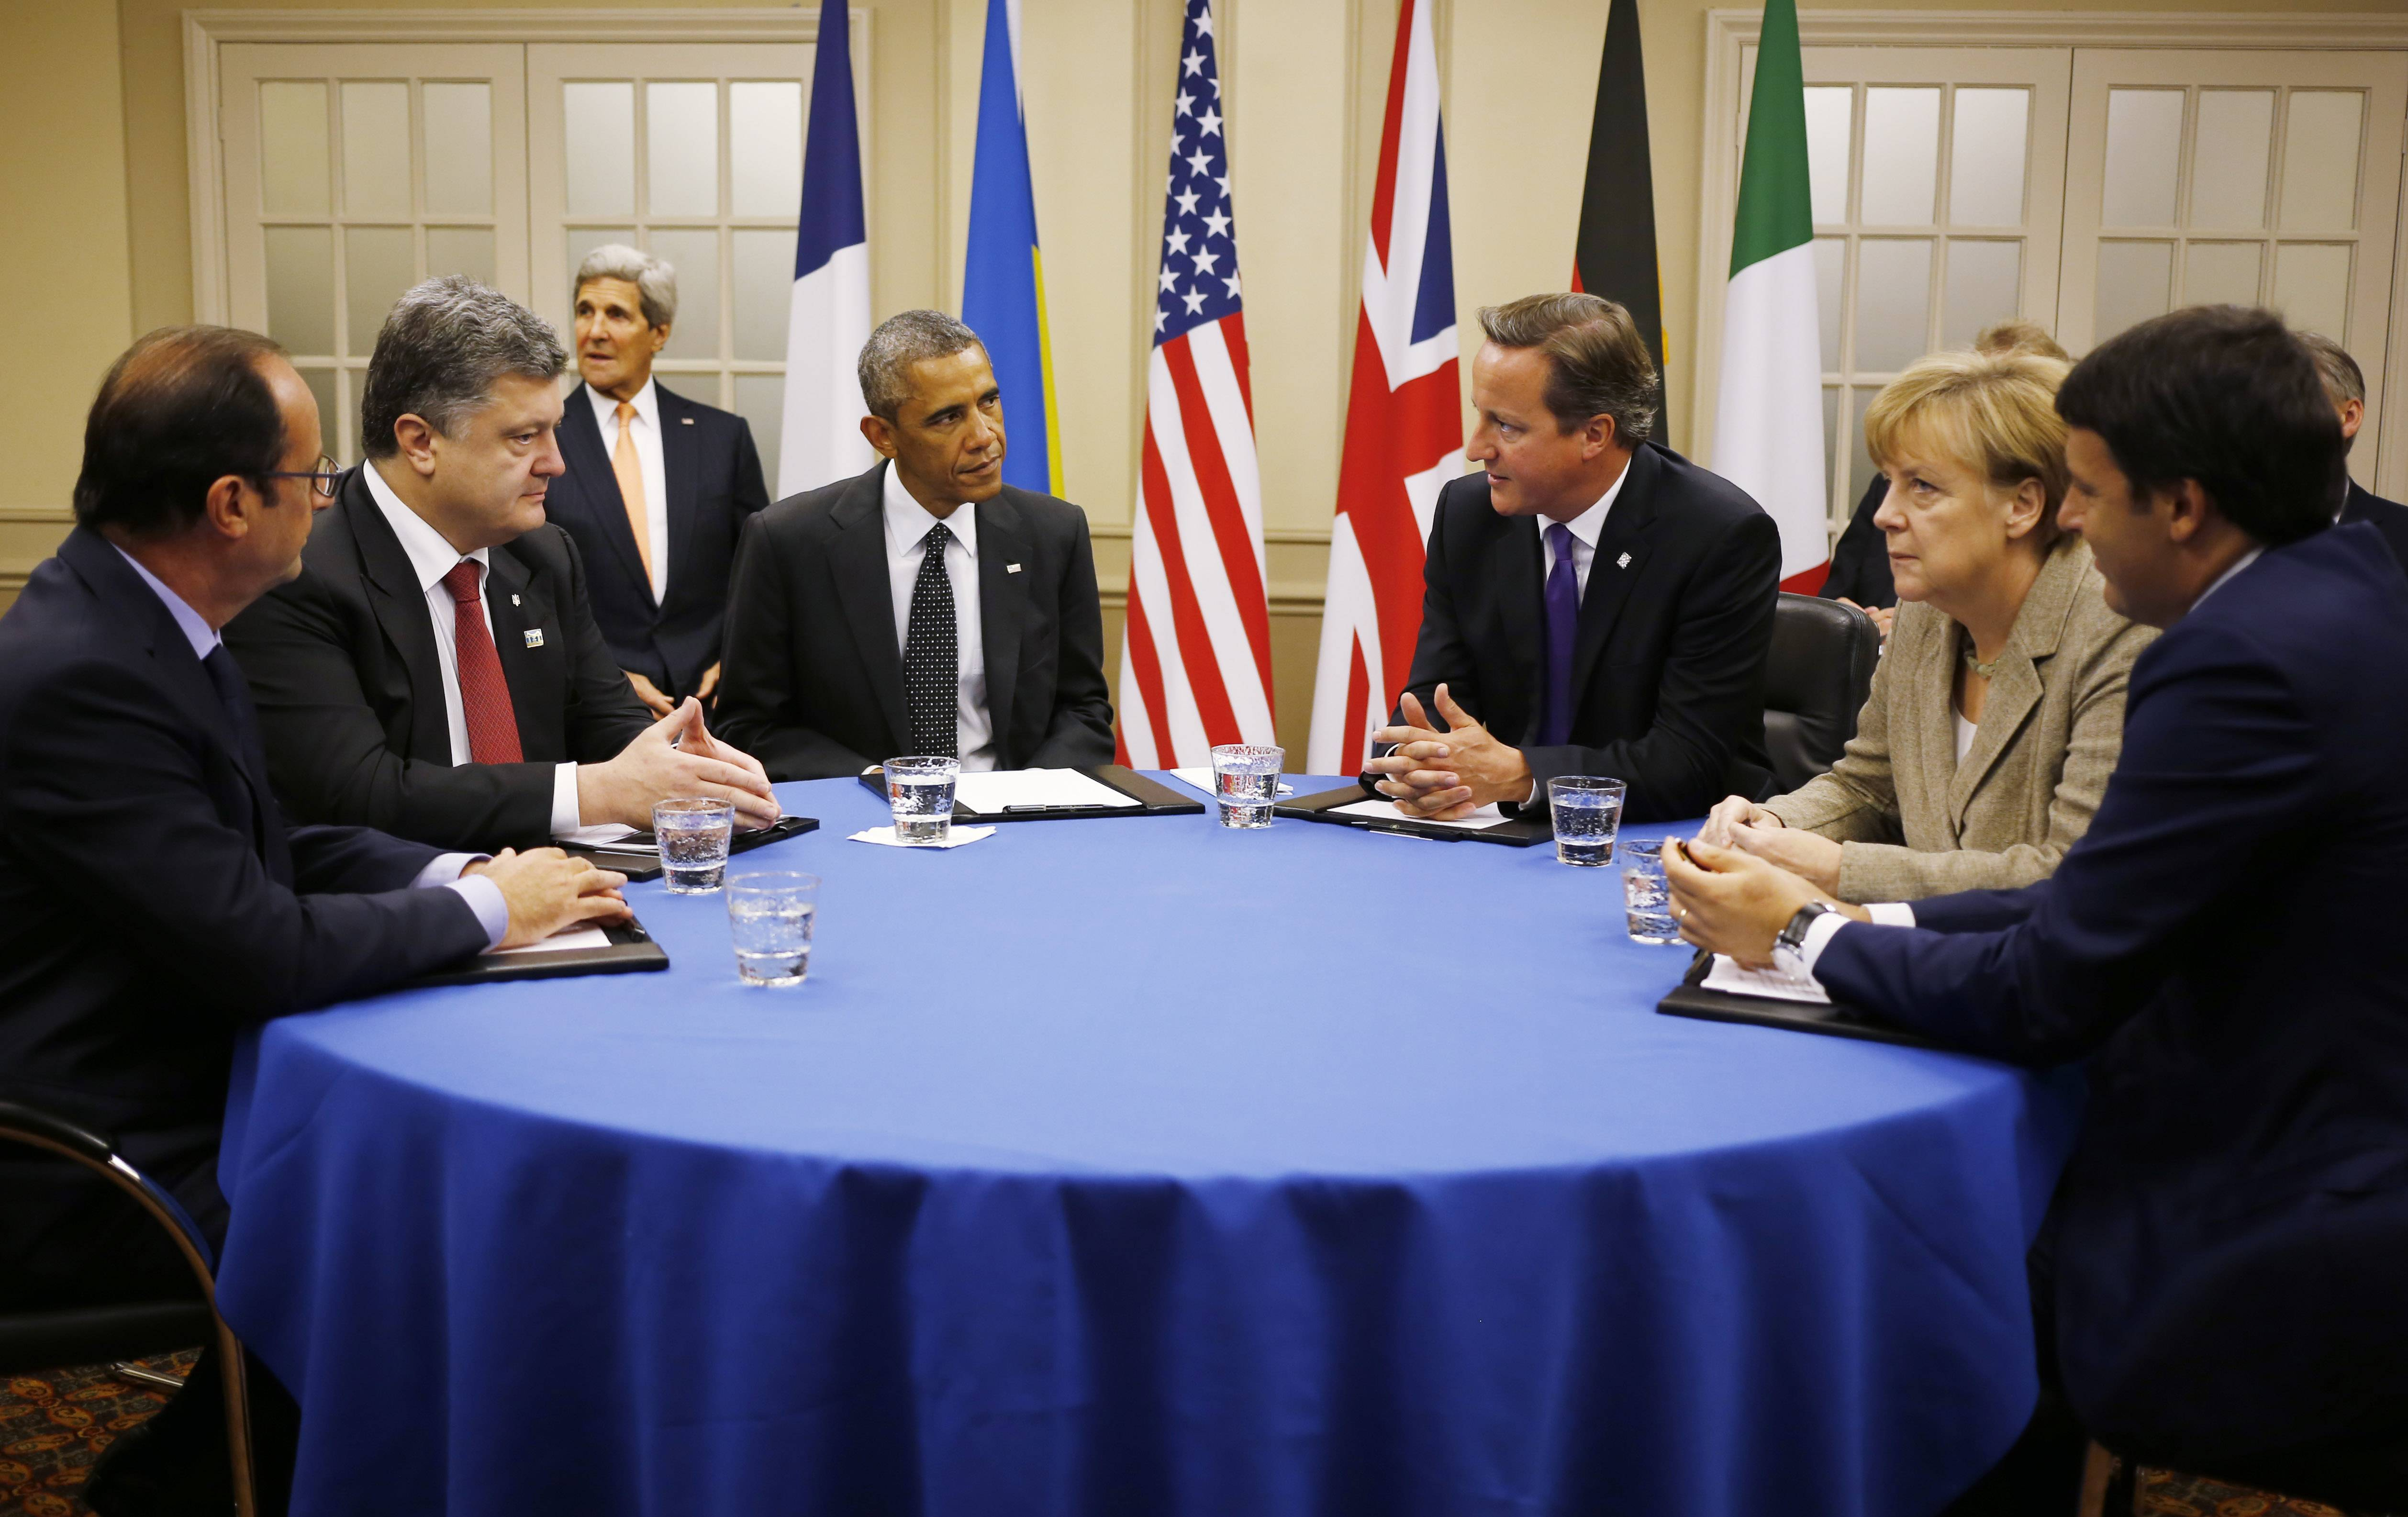 President Barack Obama, fourth from left, is seated at a table with, from left to right: France's President Francois Hollande, Ukraine President Petro Poroshenko, British Prime Minister David Cameron, German Chancellor Angela Merkel and Italian Prime Minister Matteo Renzi, as they discuss Ukraine at the NATO summit in Newport, Wales, Thursday. U.S. Secretary of State John Kerry is seated at rear left.